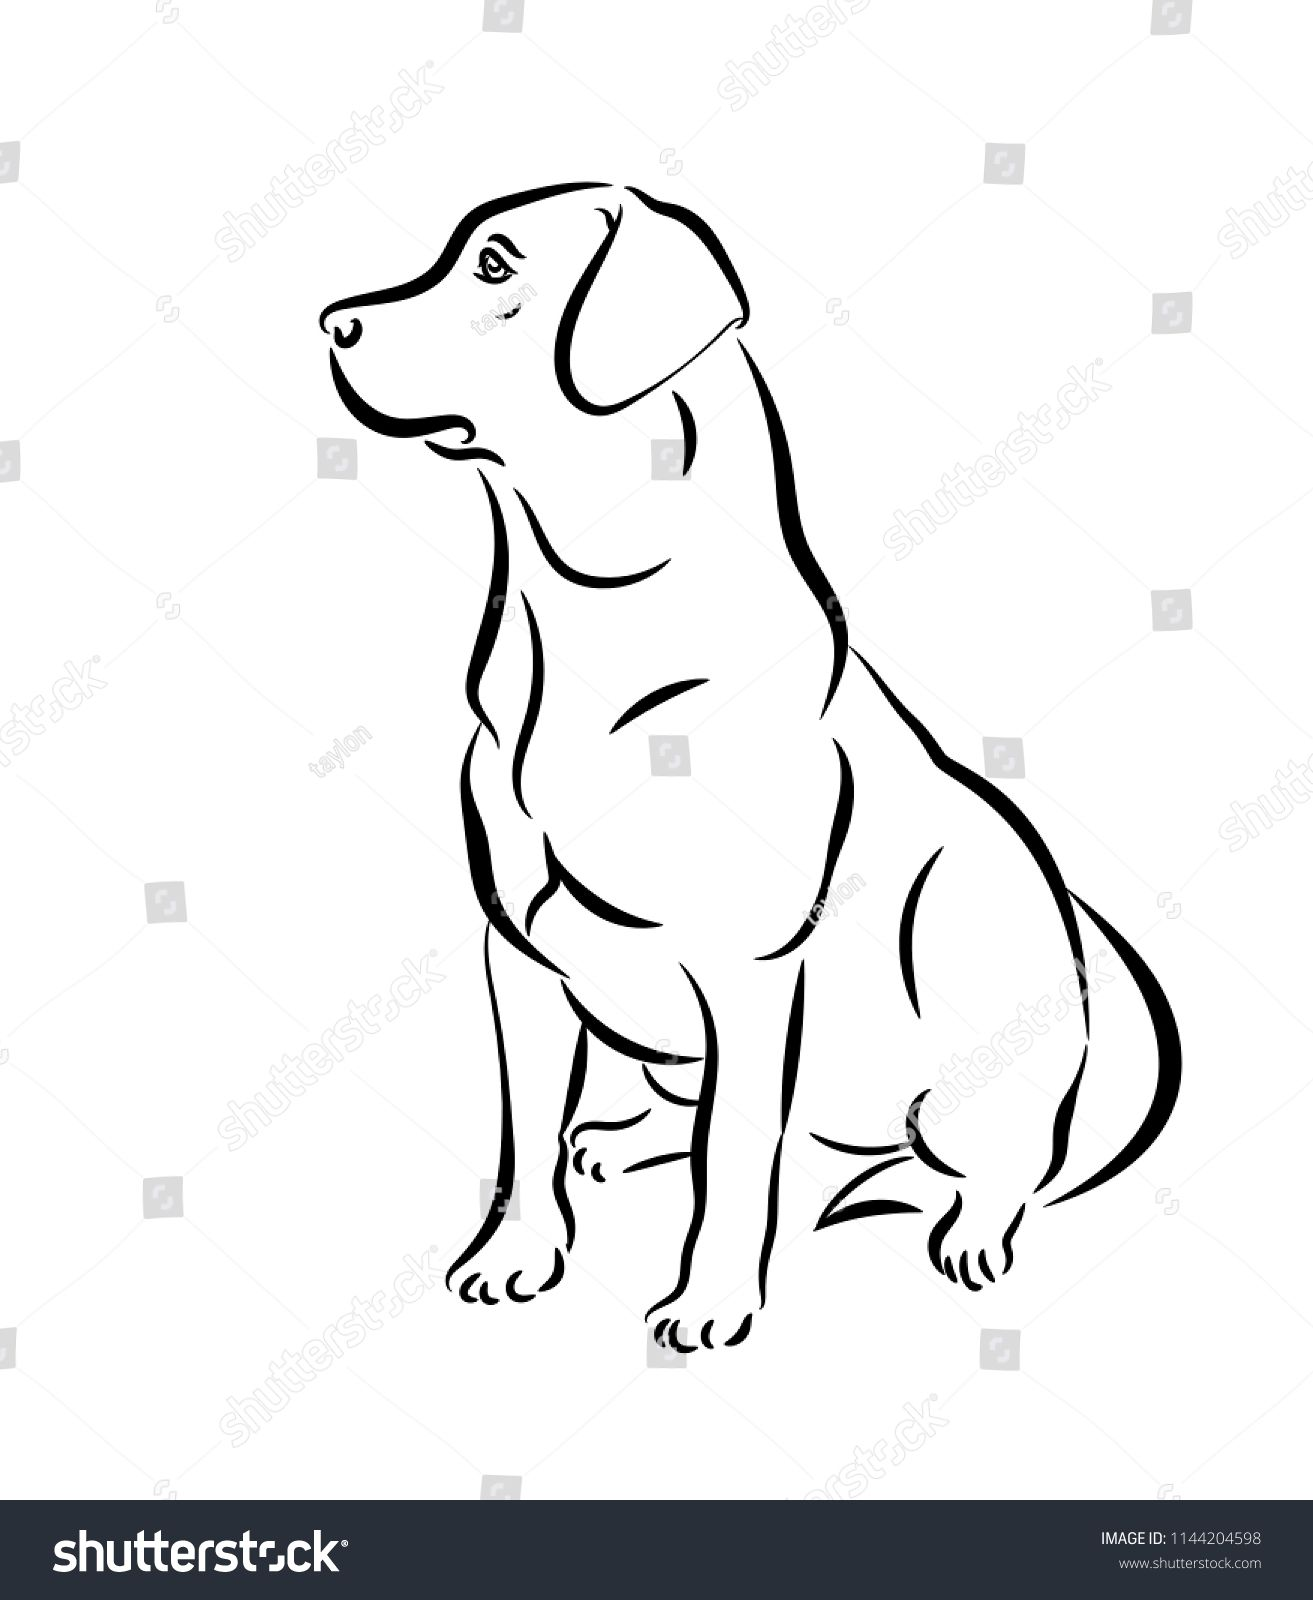 labrador vector illustration black and white outline of a